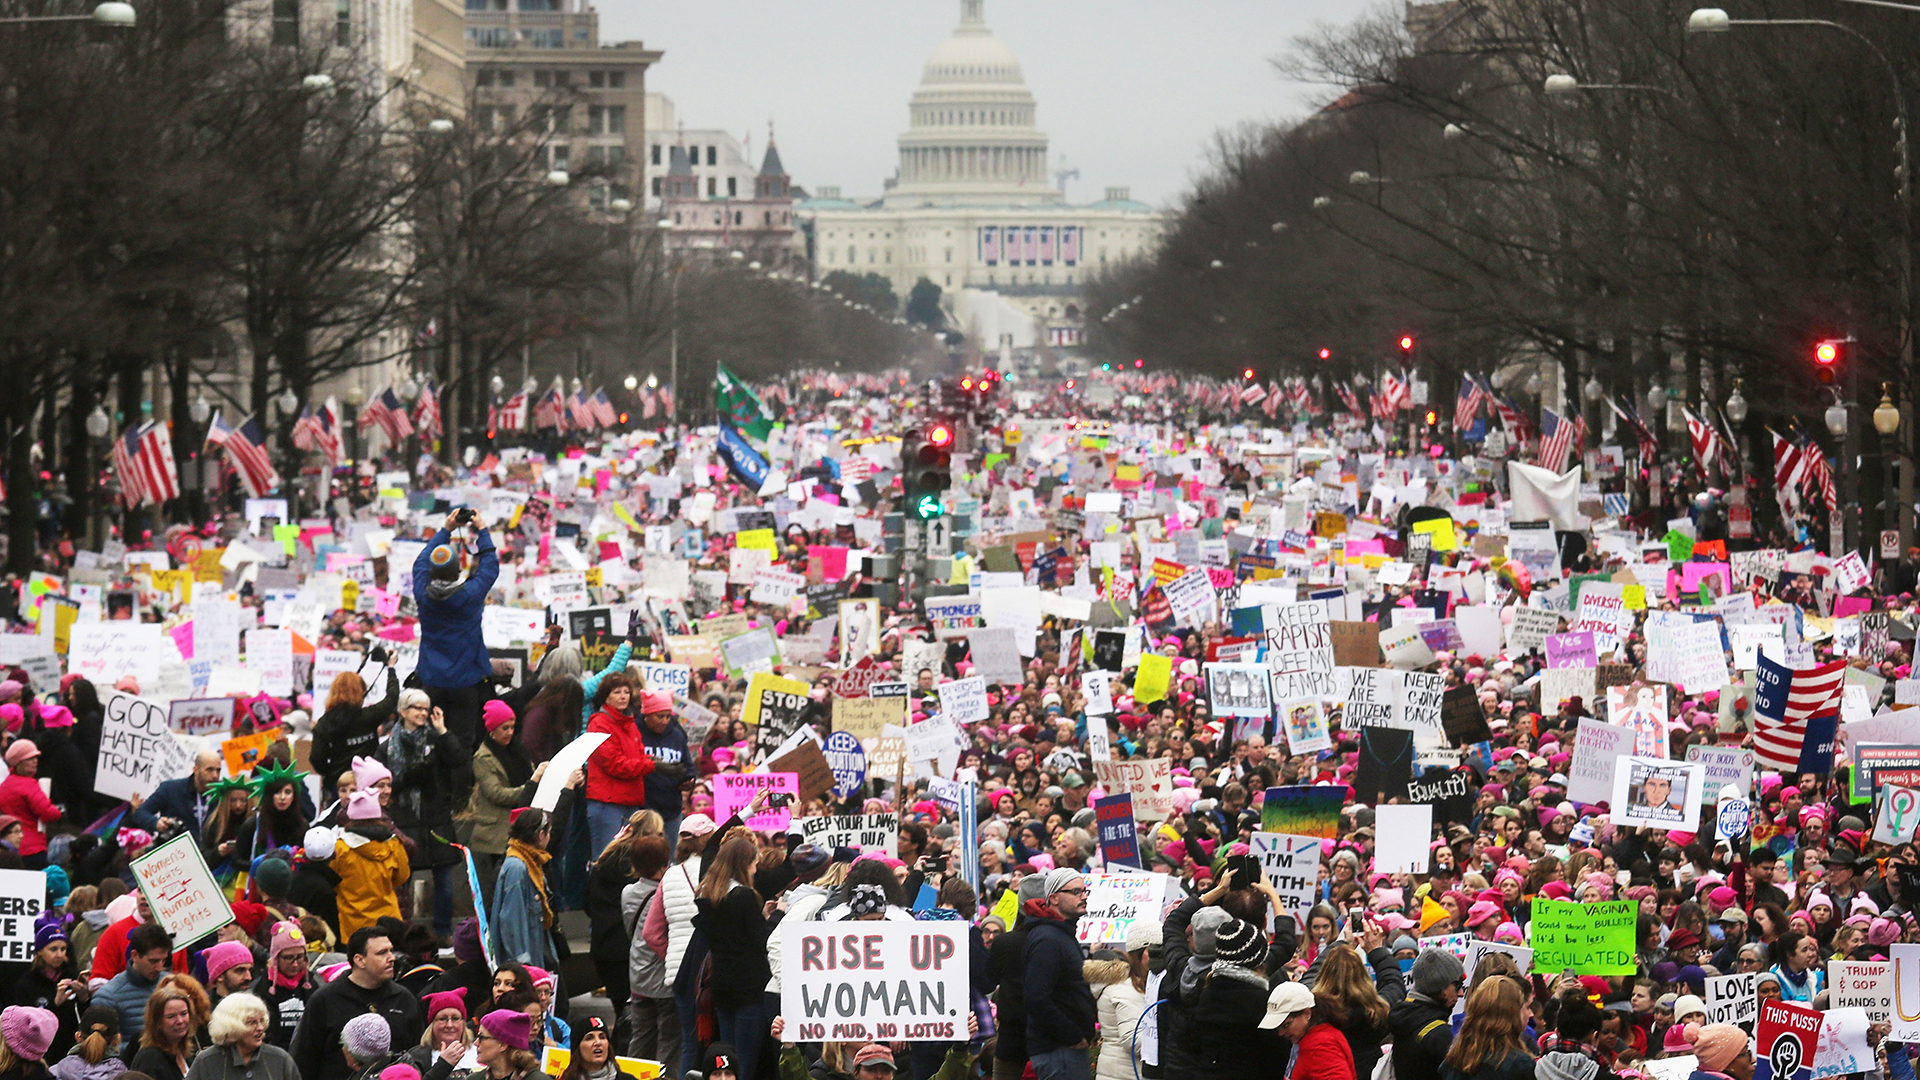 The Women's March Became the Largest Single-Day Protest in United States History One Year Ago